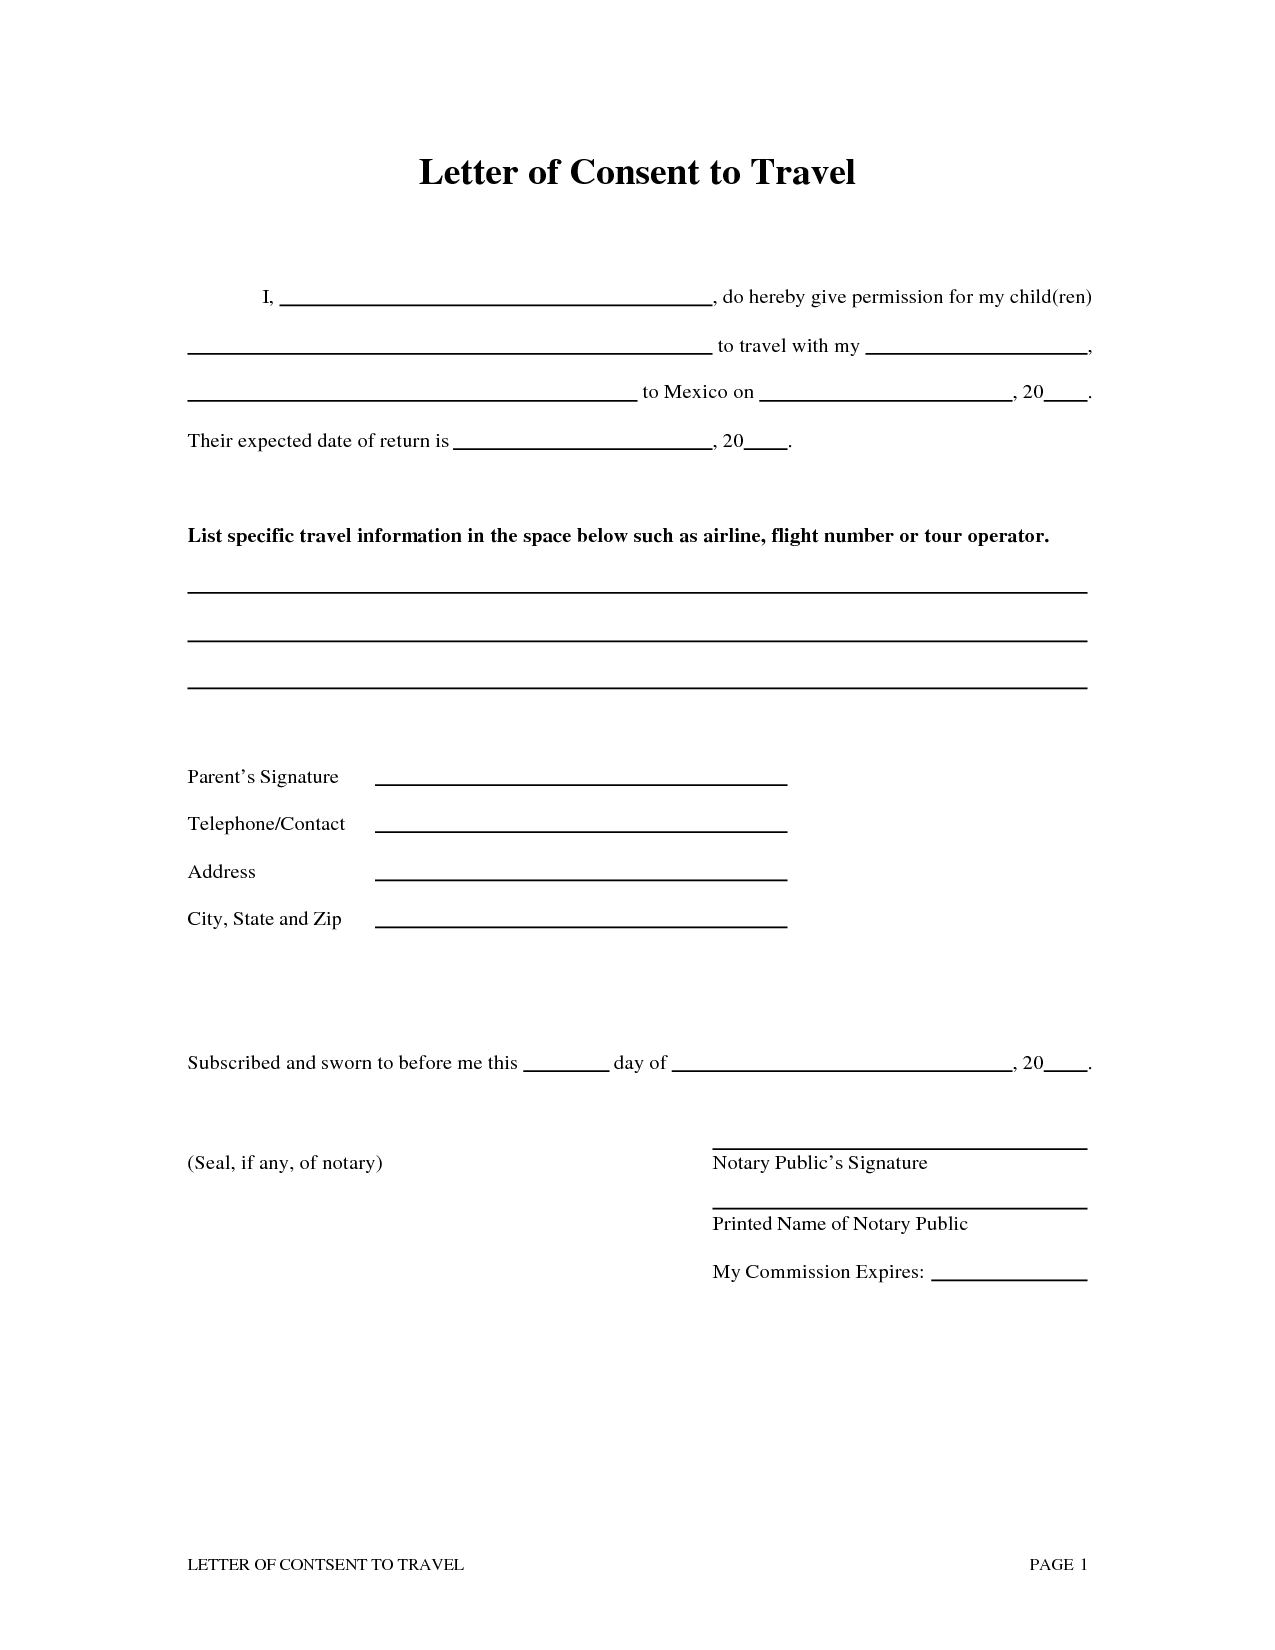 Notarized Letter Template for Child Travel - Inspirational Notarized Letter Template for Child Travel Your